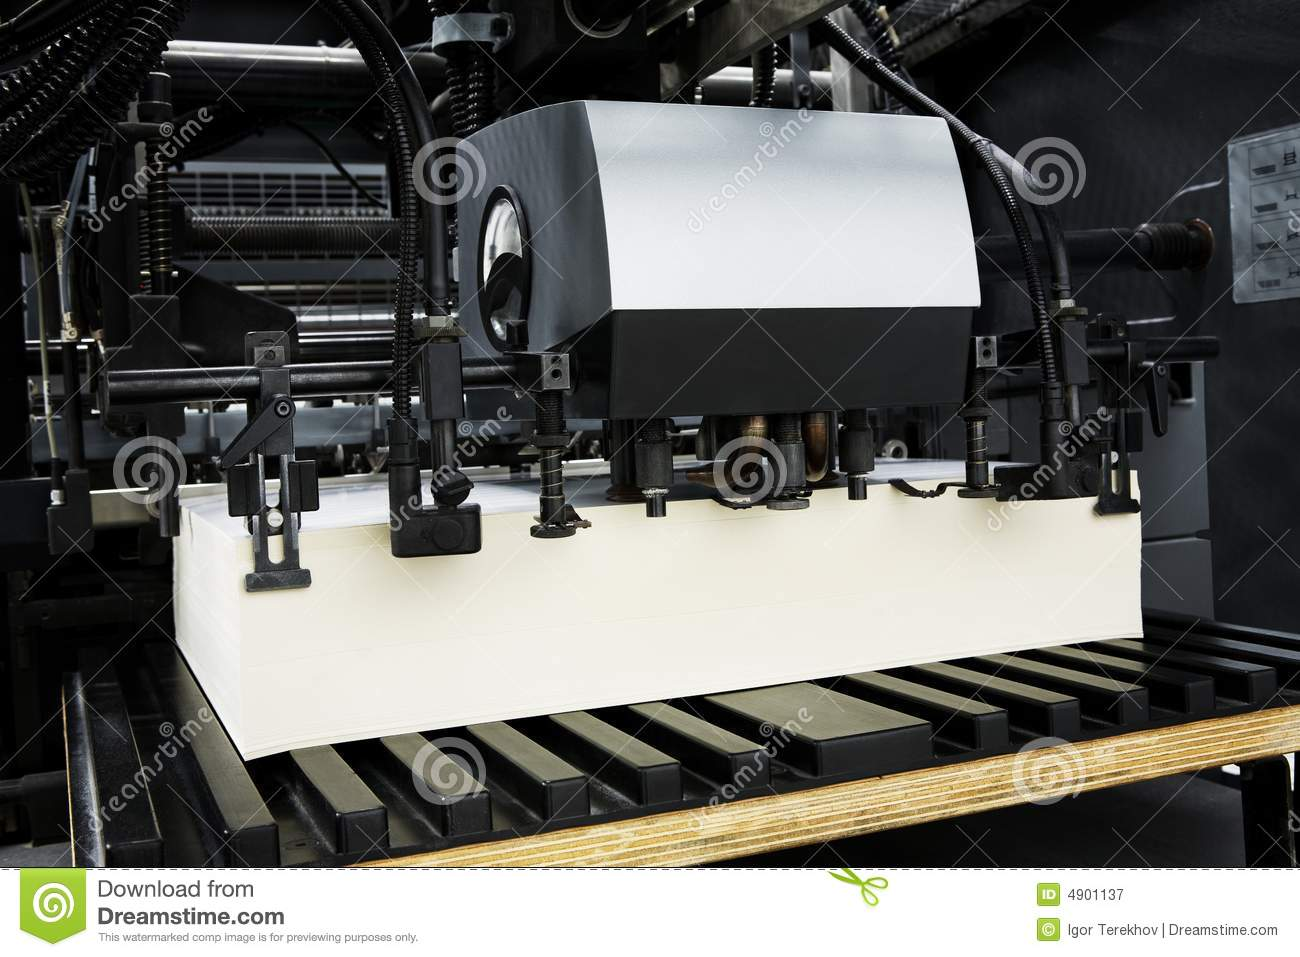 The equipment for a press